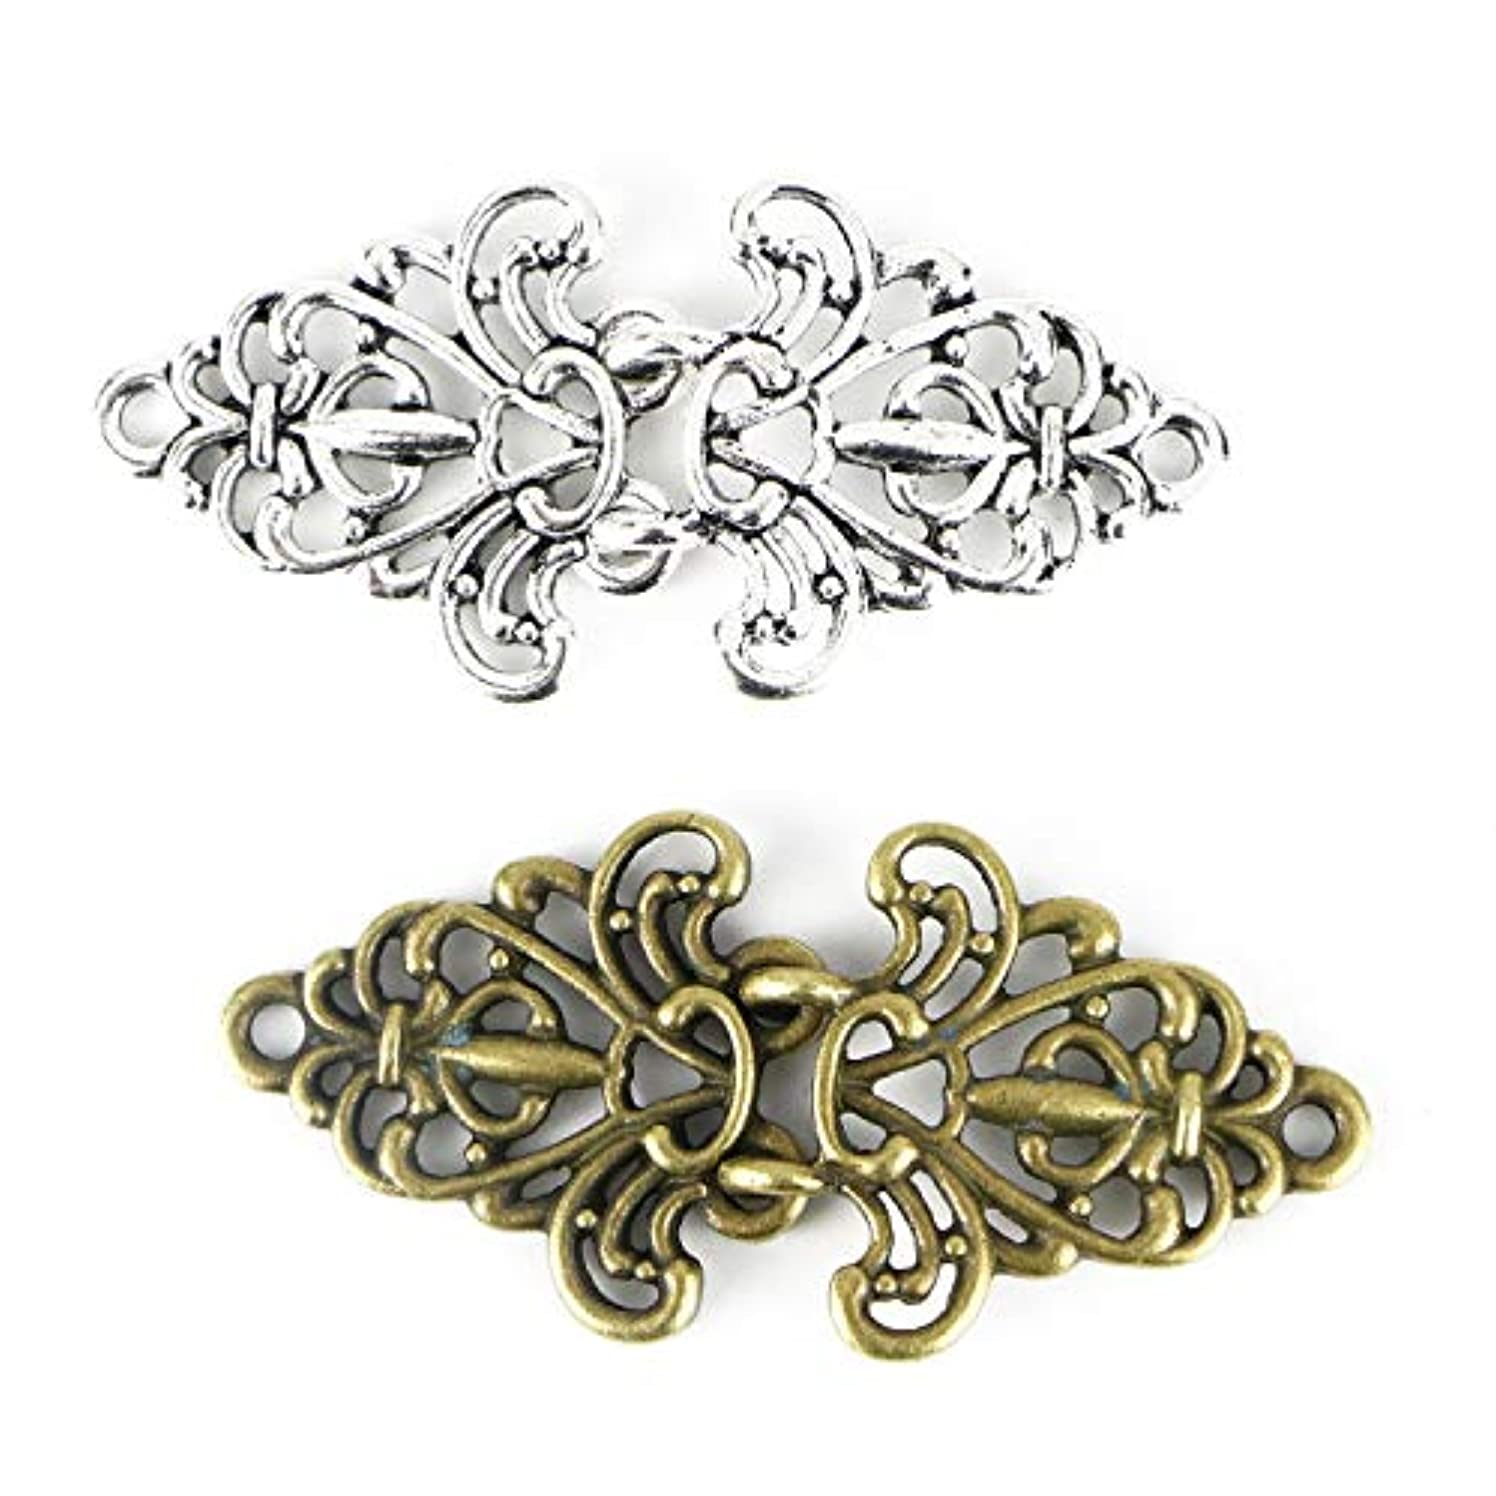 Monrocco 4 Pairs Flower Cape or Cloak Clasp Fasteners 64mm x 29mm